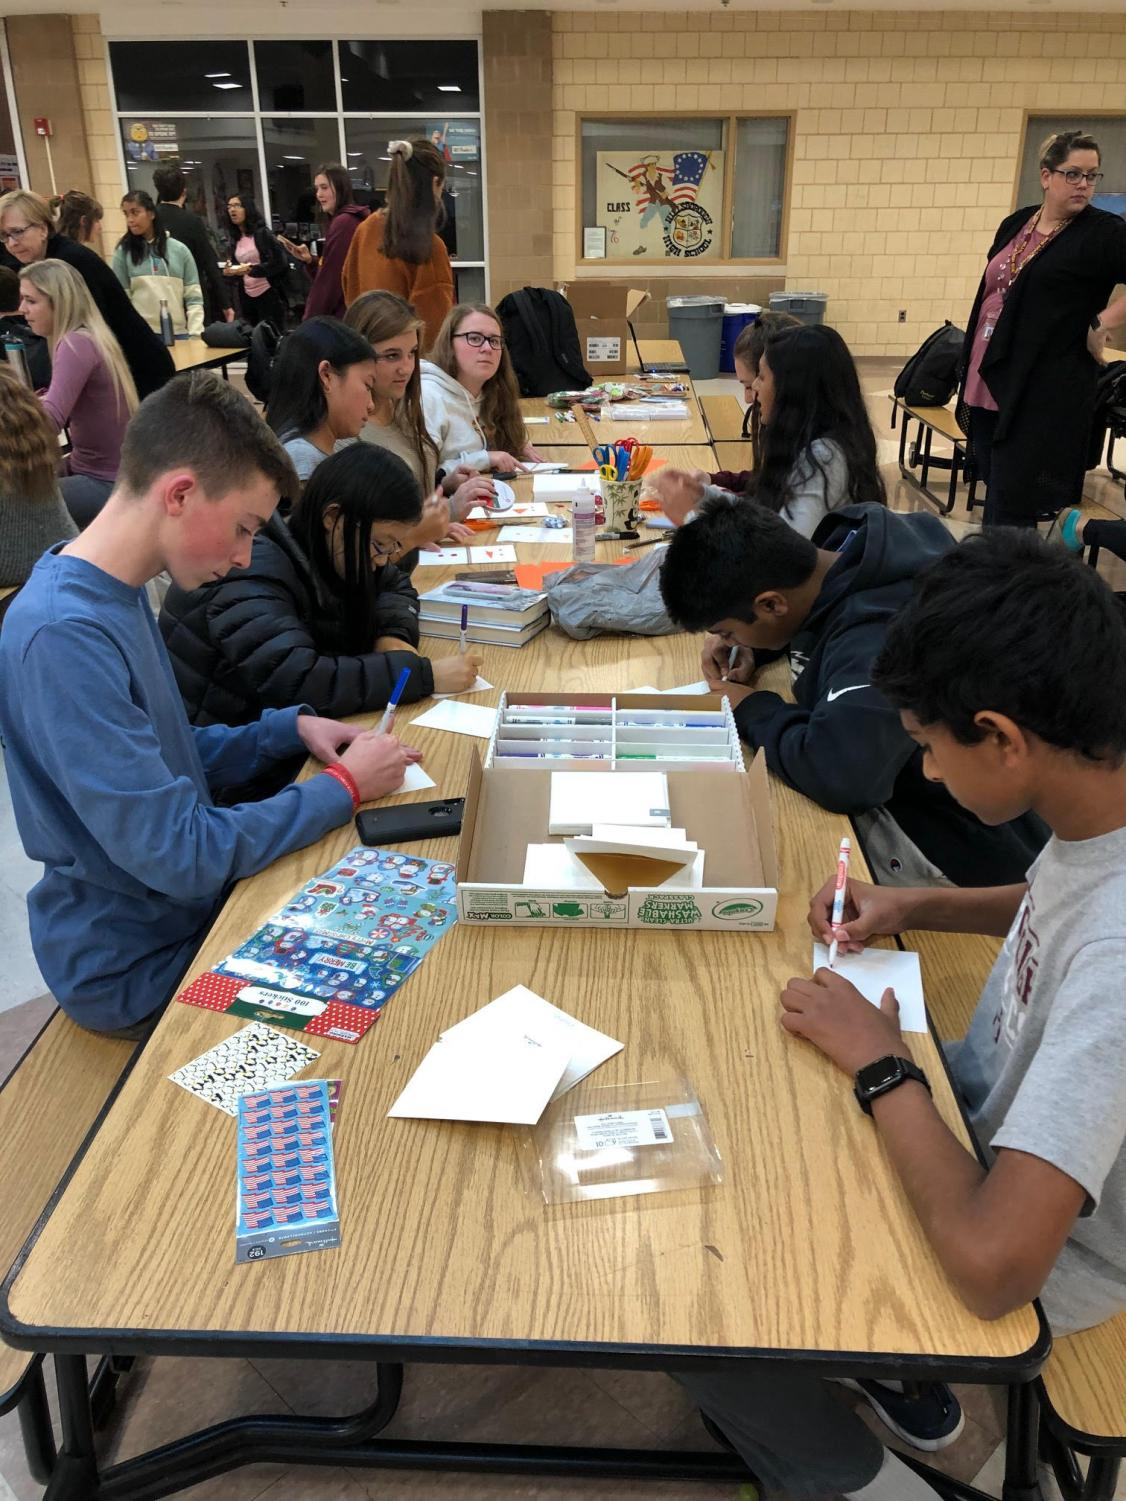 Students stay after school to make holiday cards for Safe and Sound. Photo courtesy of Caryn Brogan.